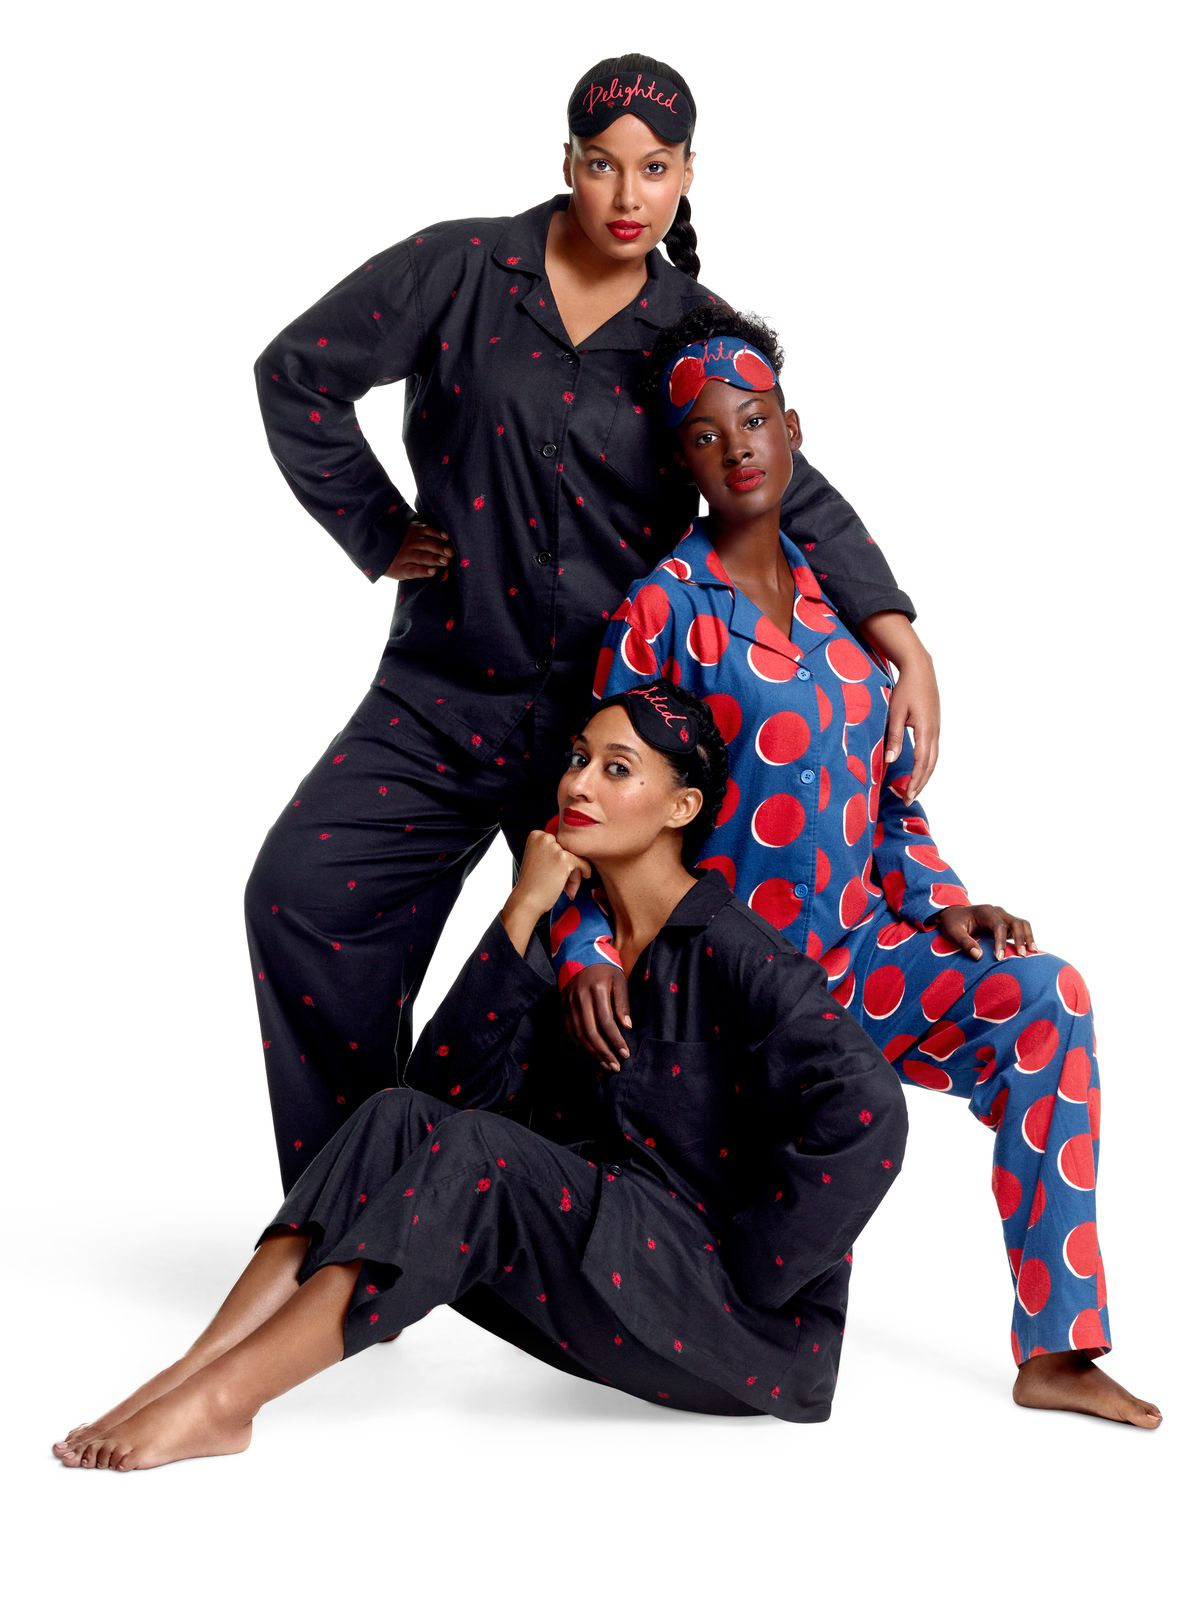 92e0e99ec16 You Can Finally Shop the Tracee Ellis Ross x J.C. Penney Collection ...